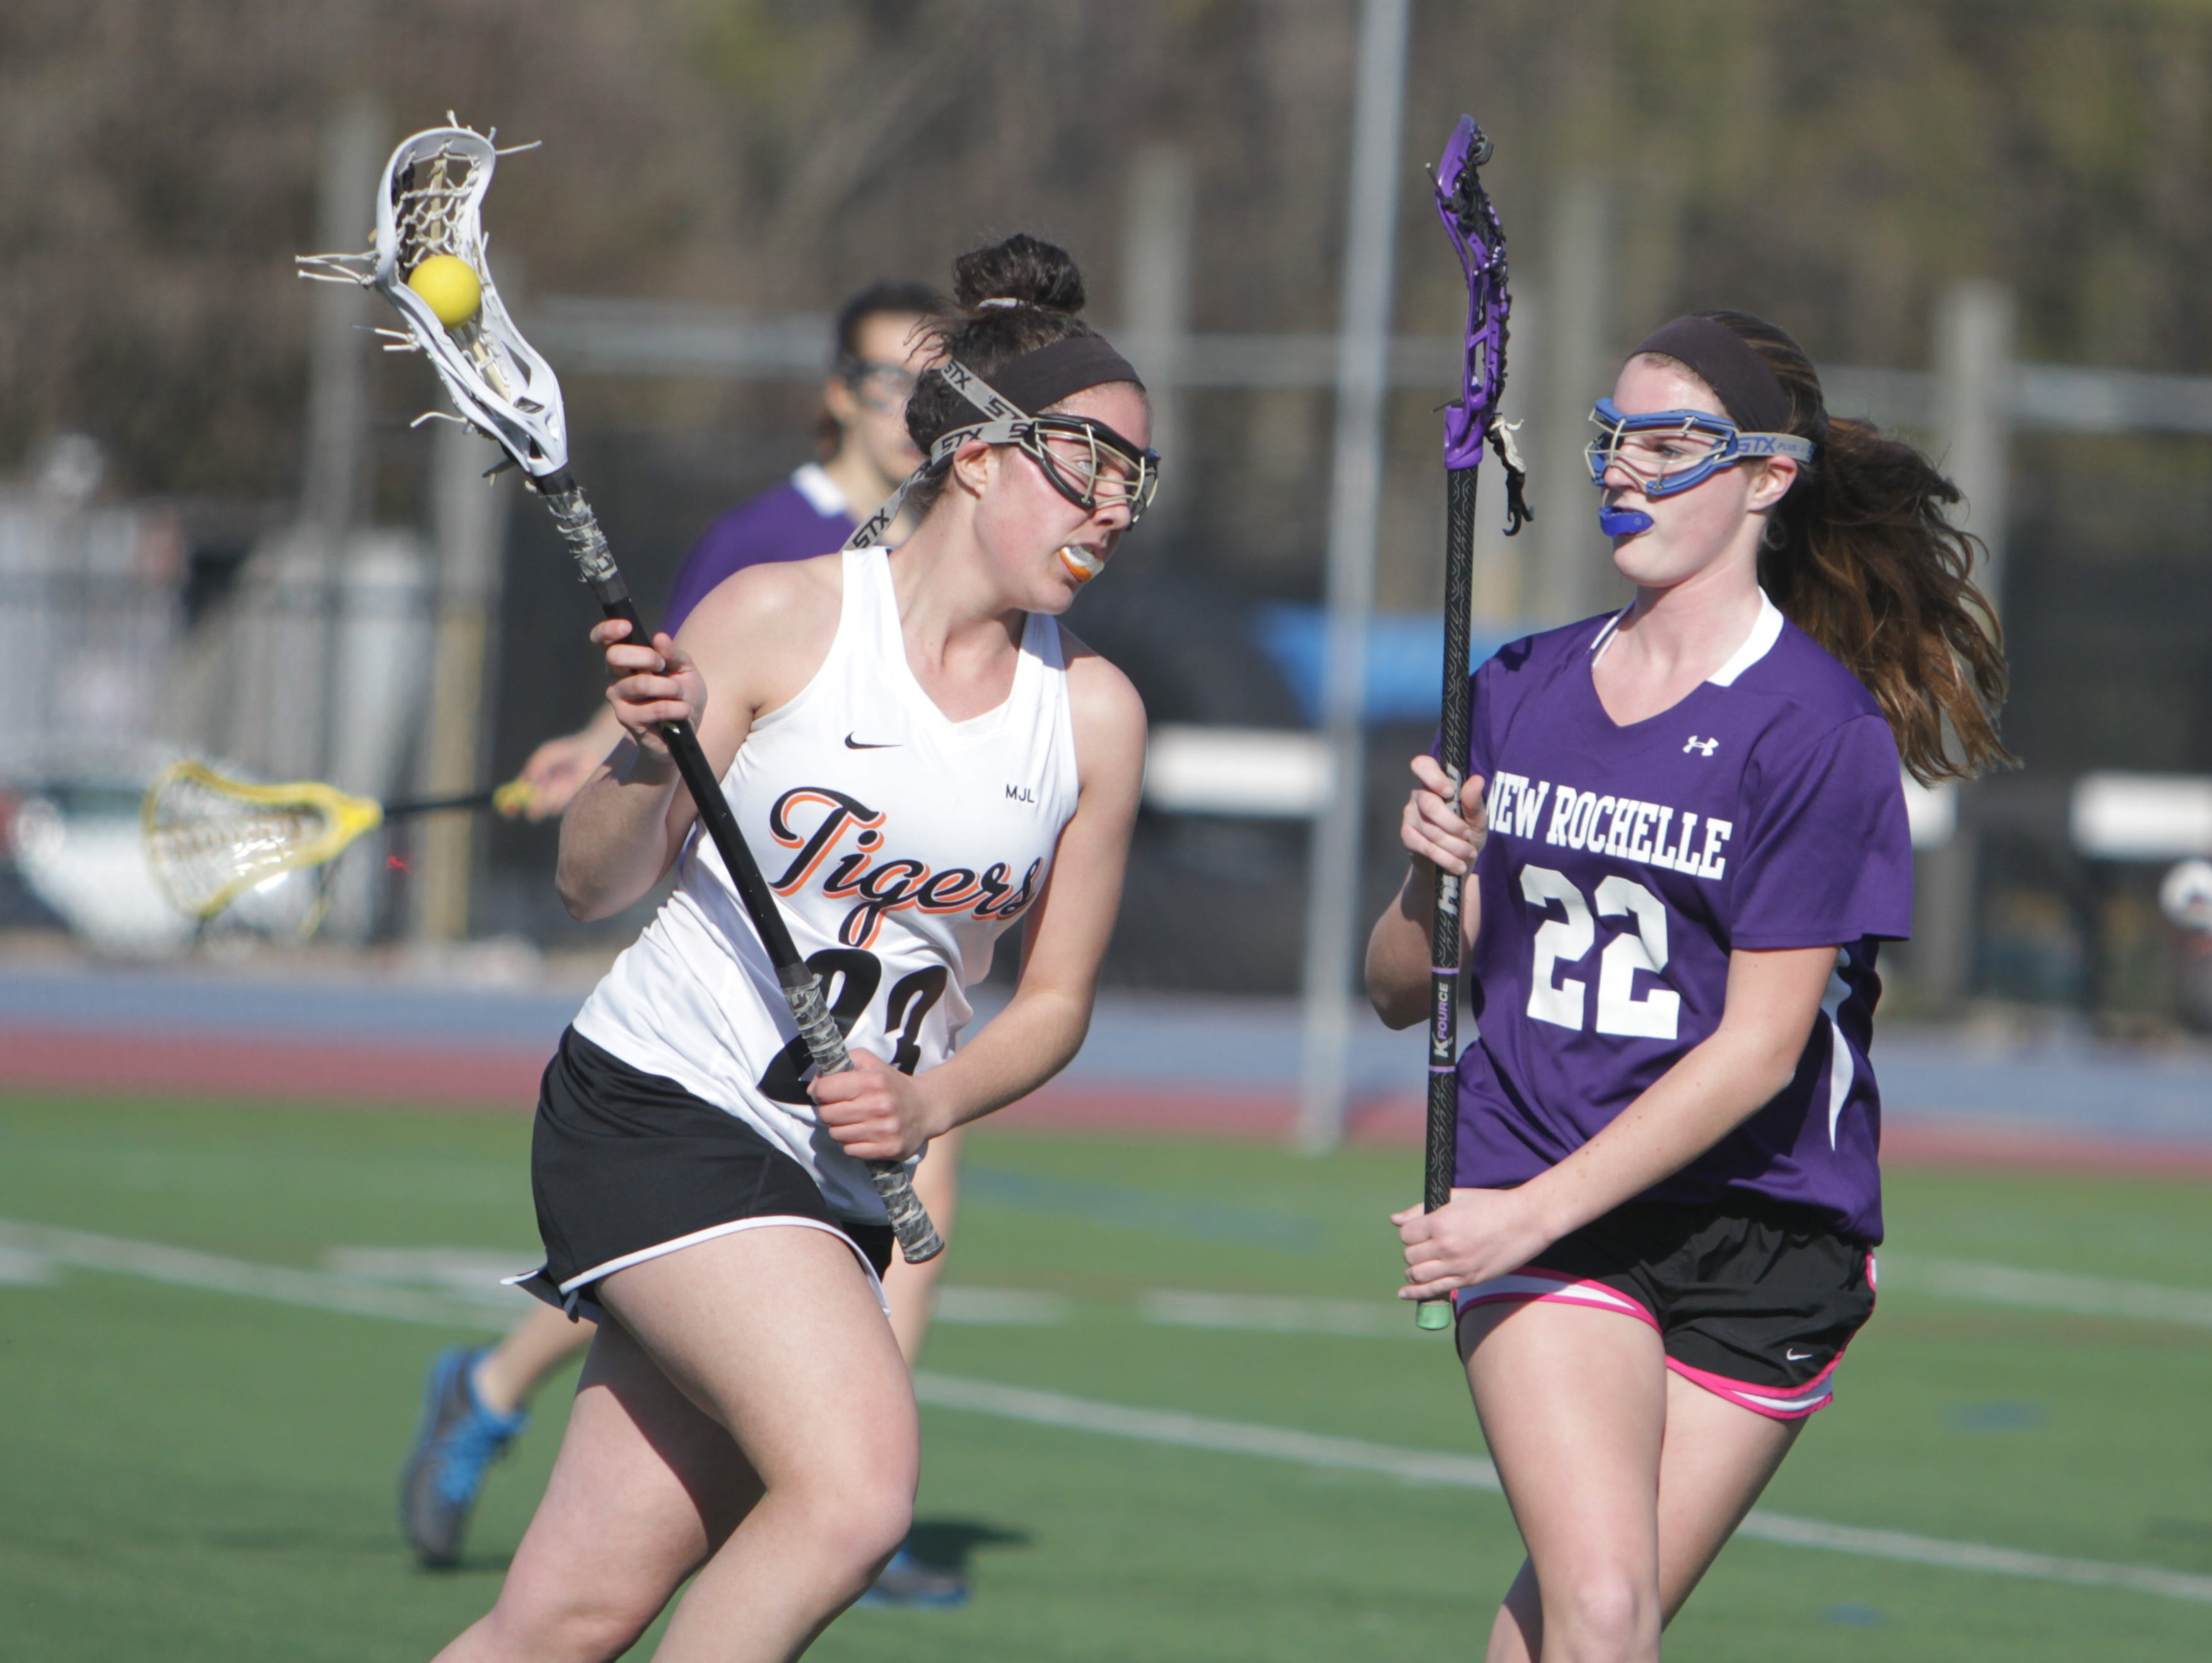 White Plains' Kali Peeples attempts to run past New Rochelle's Kelsey Freeman during a Section 1 girls lacrosse game between New Rochelle and White Plains at White Plains High School on Wednesday, April 13th, 2016. White Plains won 11-6.